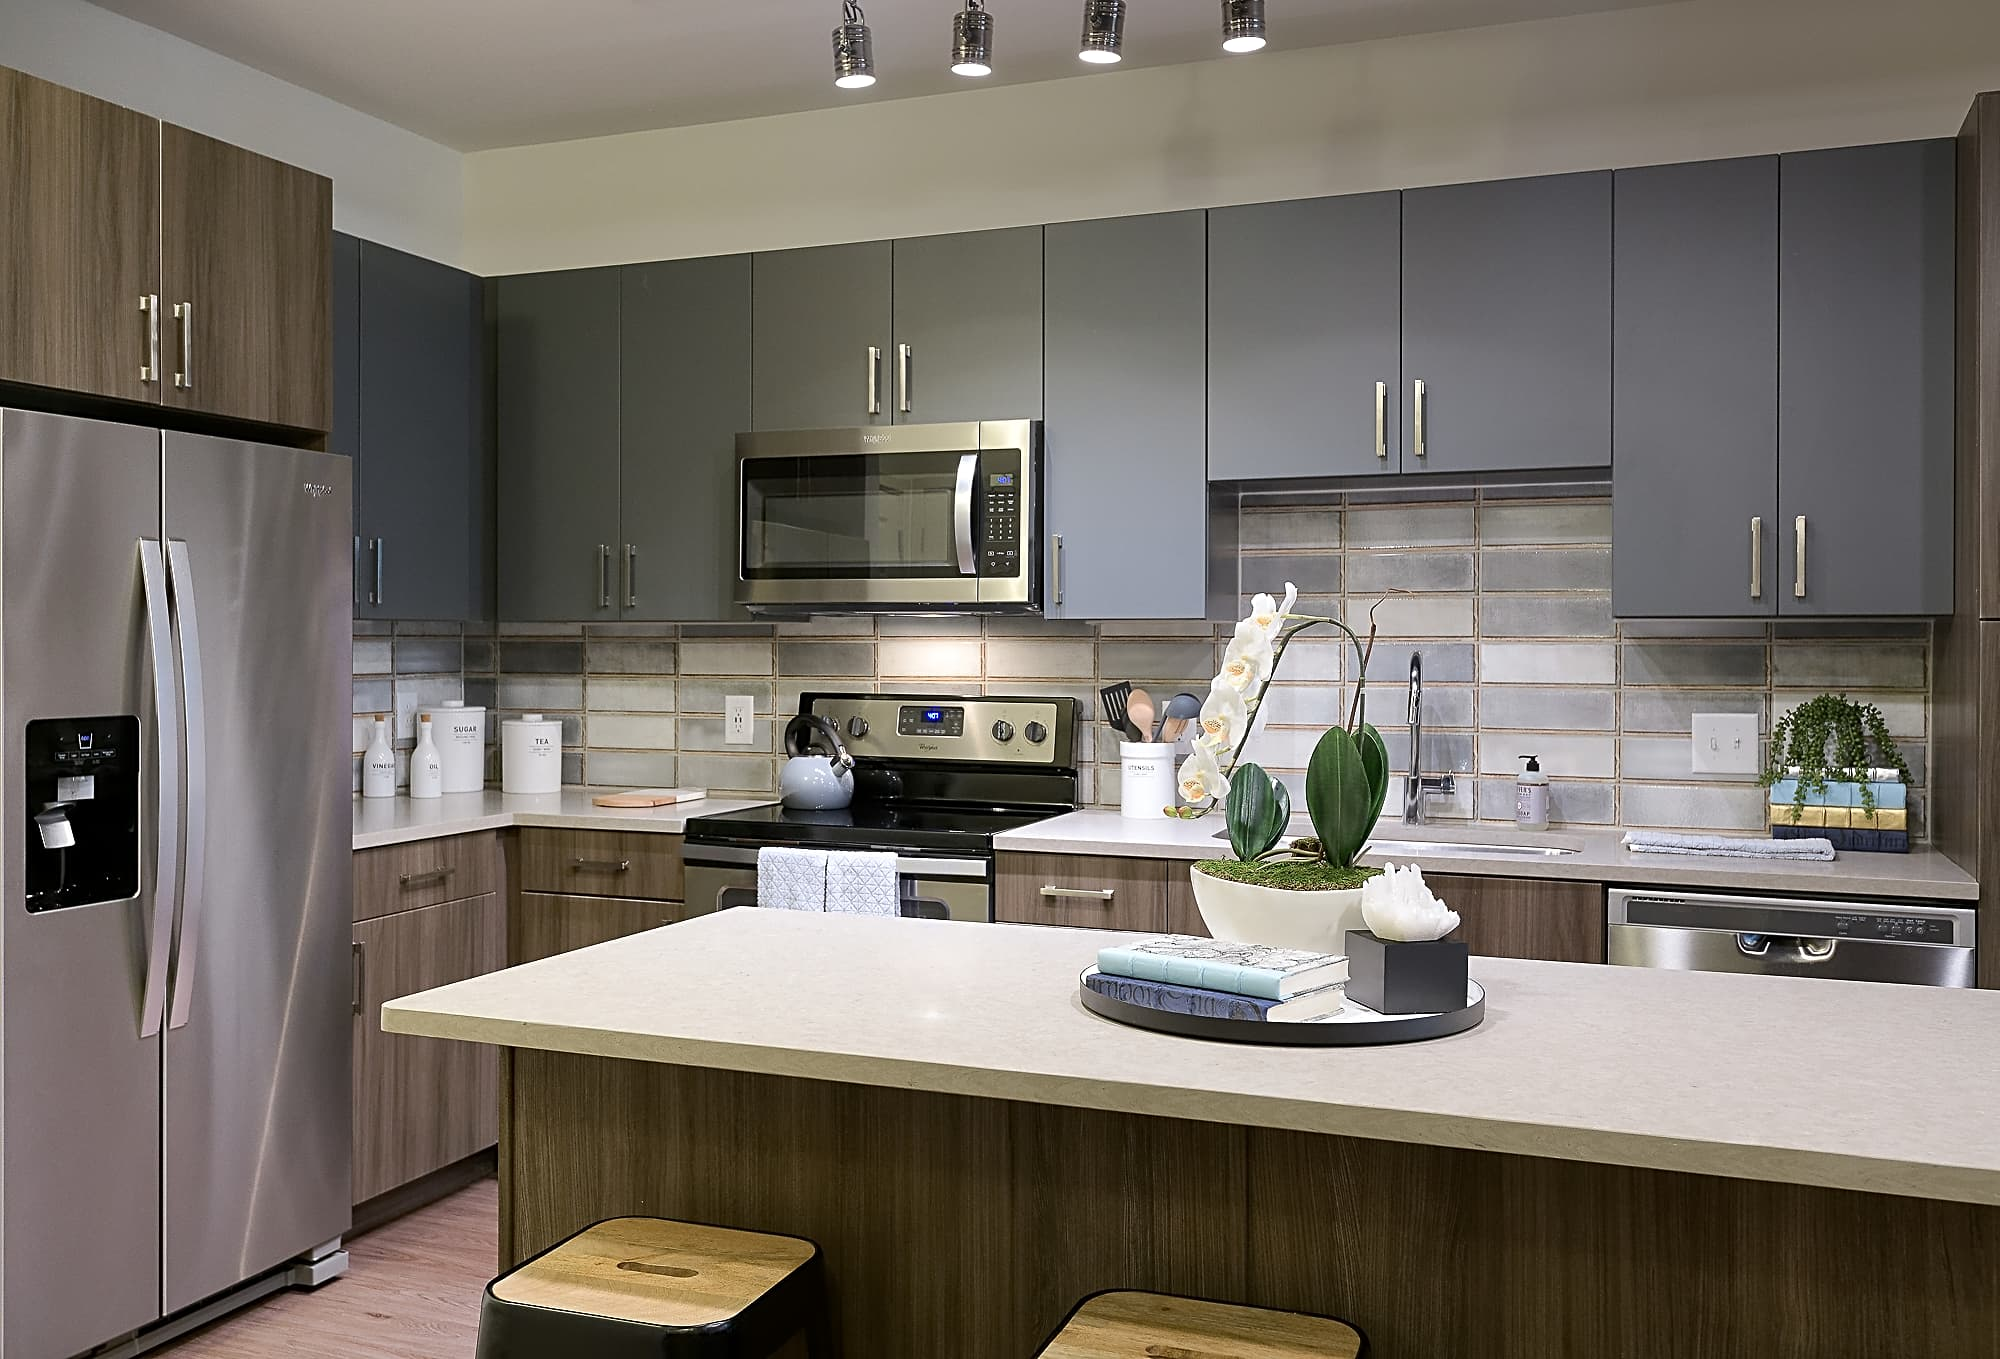 Choose from two kitchen schemes, the Uptown or the Chiseled.